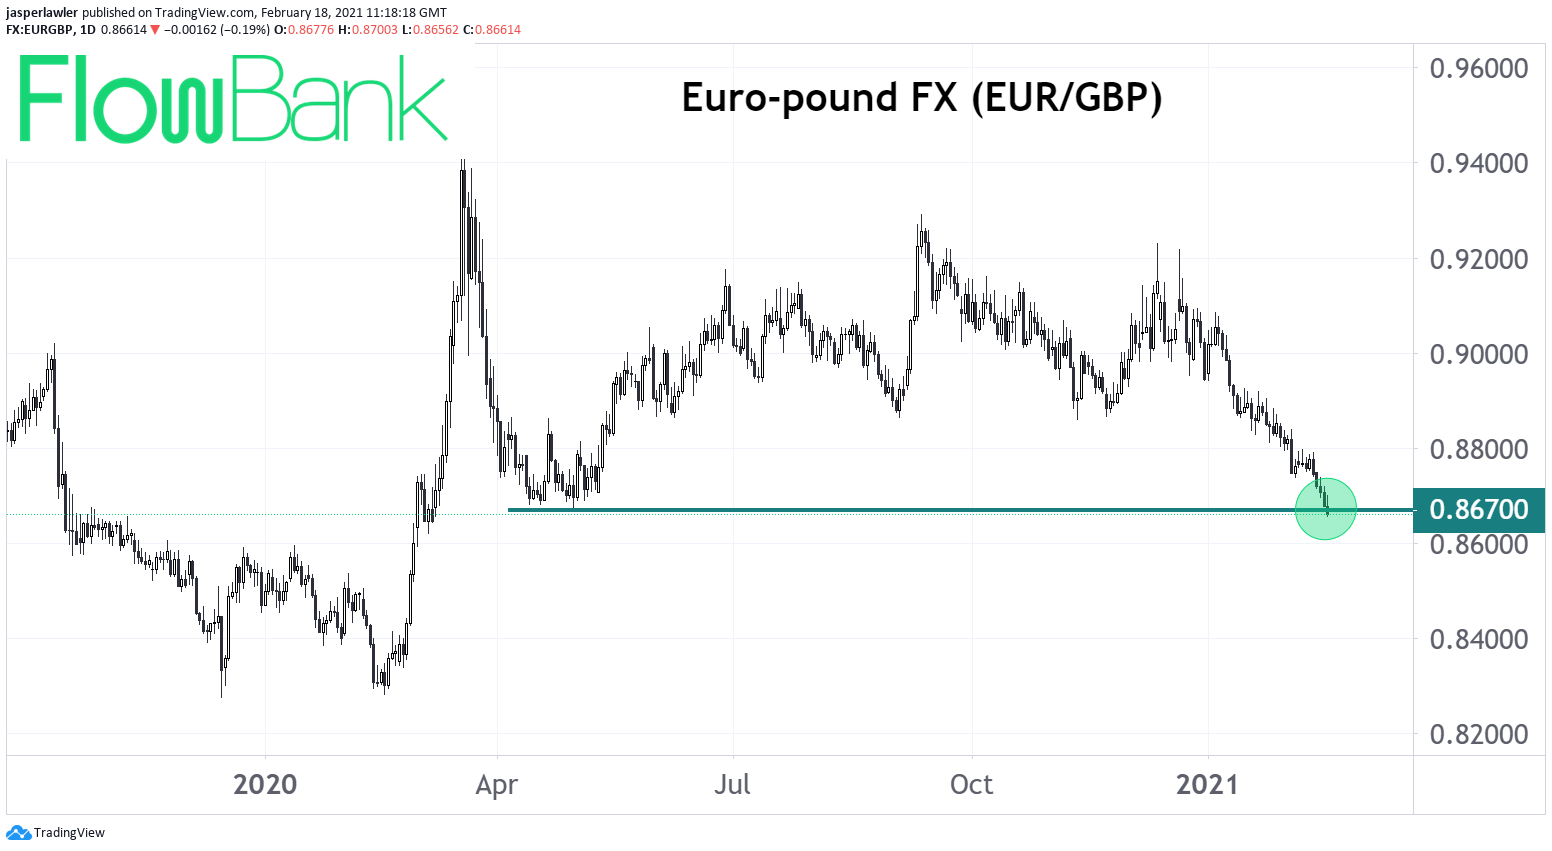 Pound reaches highest vs. euro since April last year in post-Brexit rally